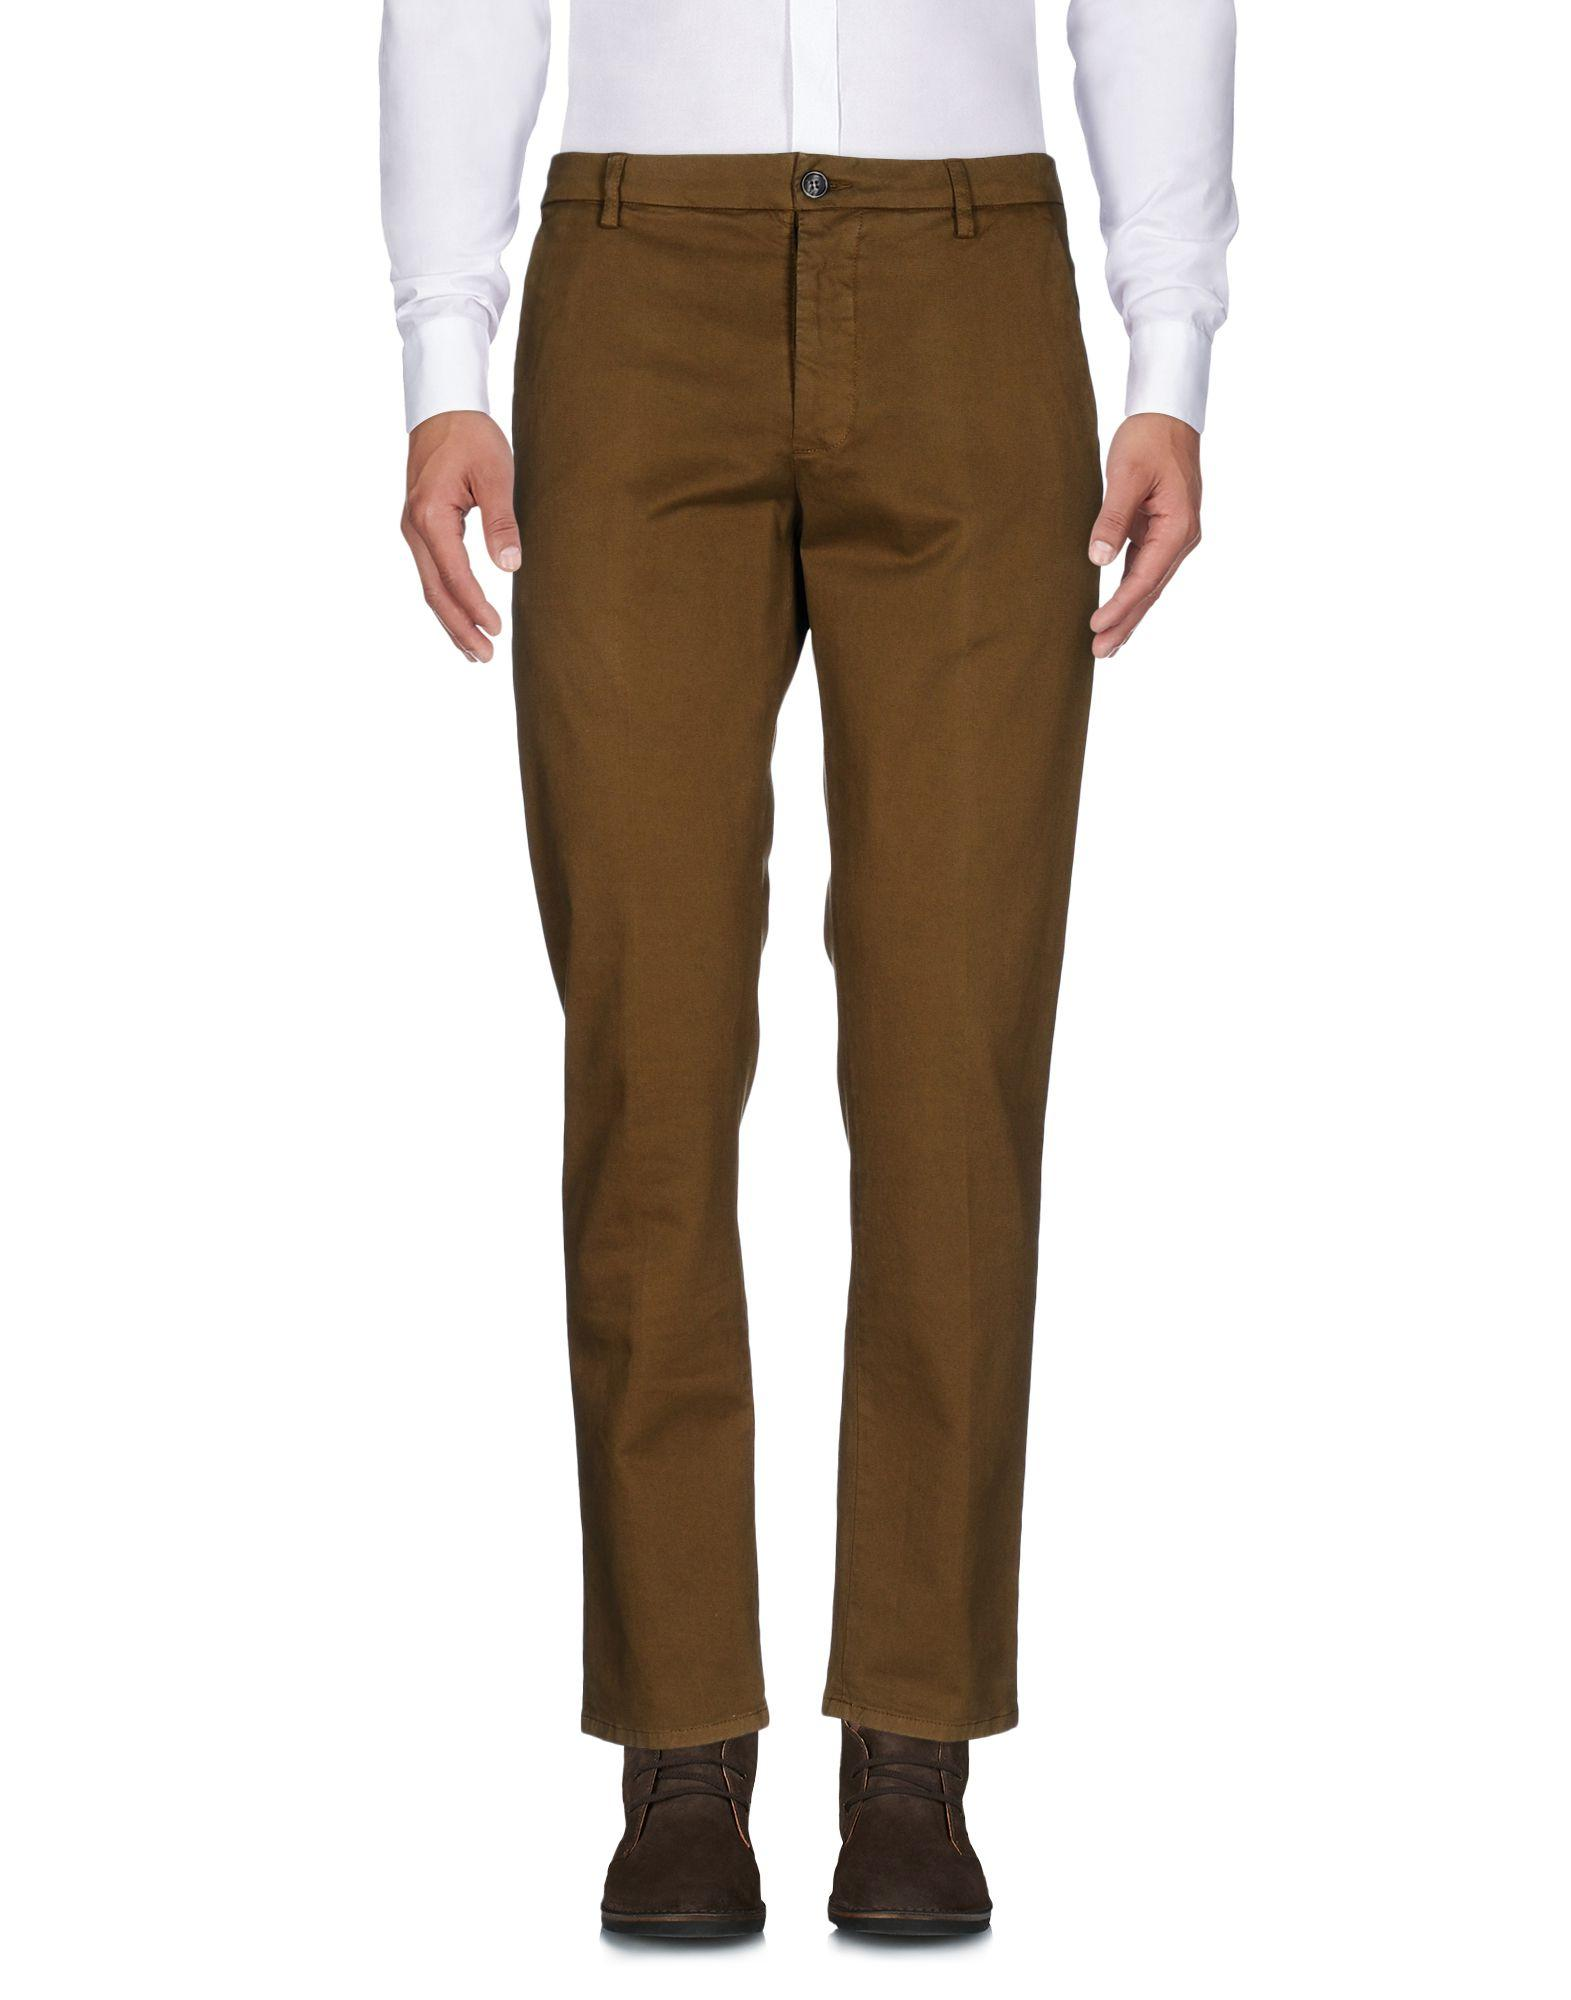 Low Brand Casual Pants In Military Green